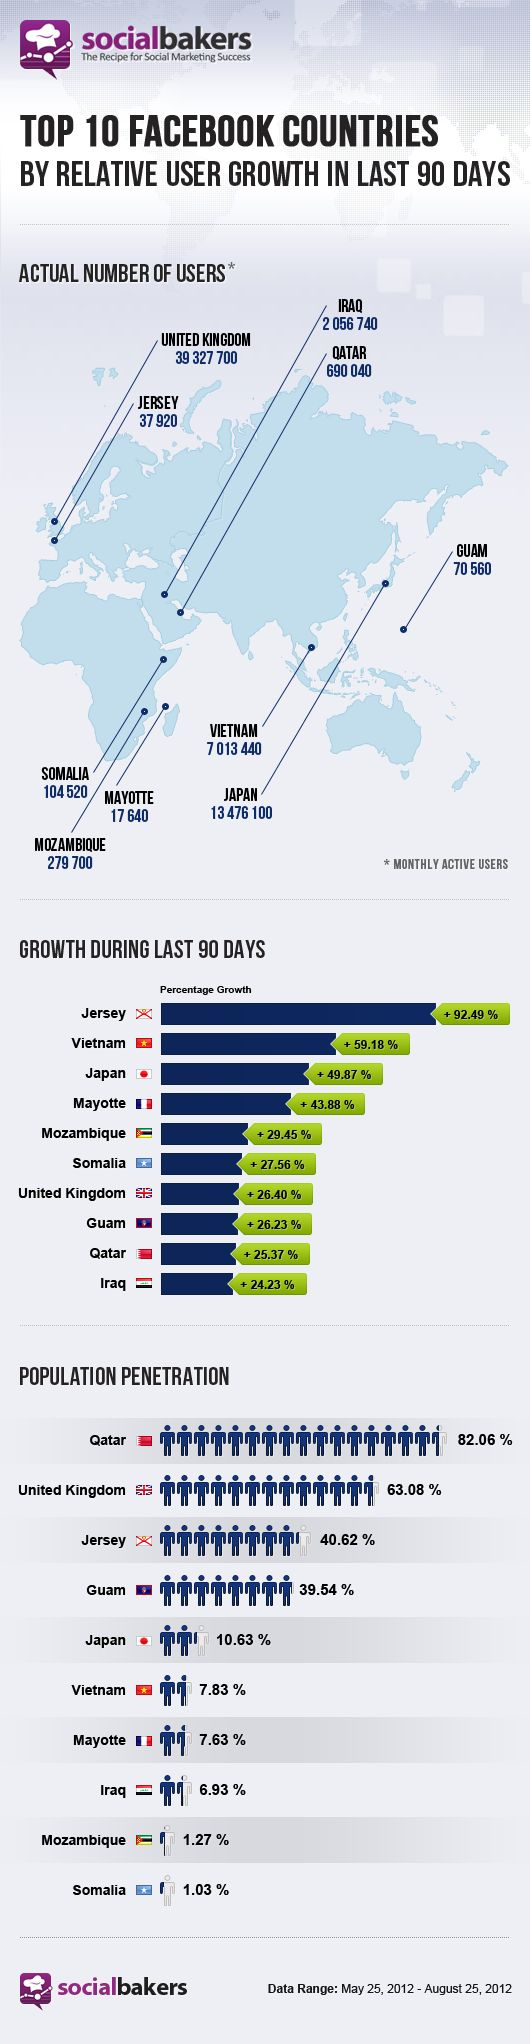 Where Is Facebook Growing? - Socialbakers